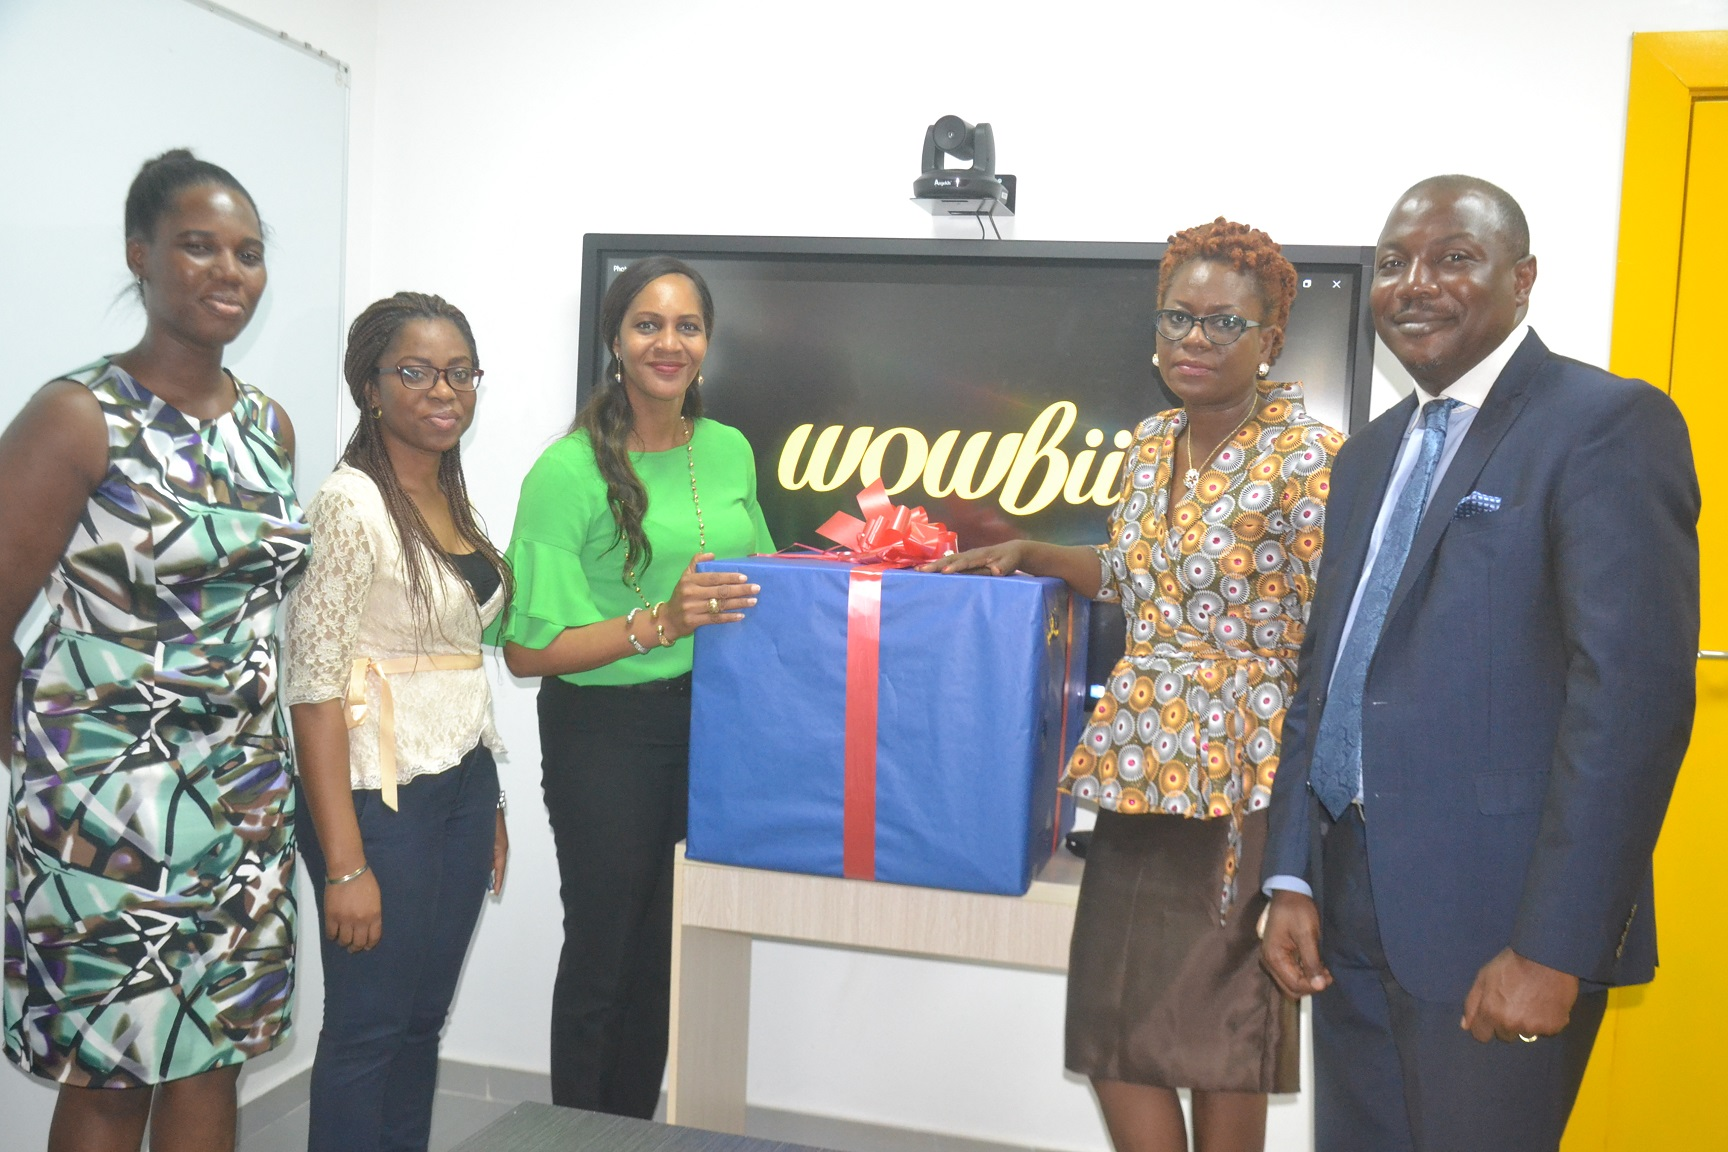 WOWBii Interactive: RiverBank School becomes first BUDDZone in Nigeria